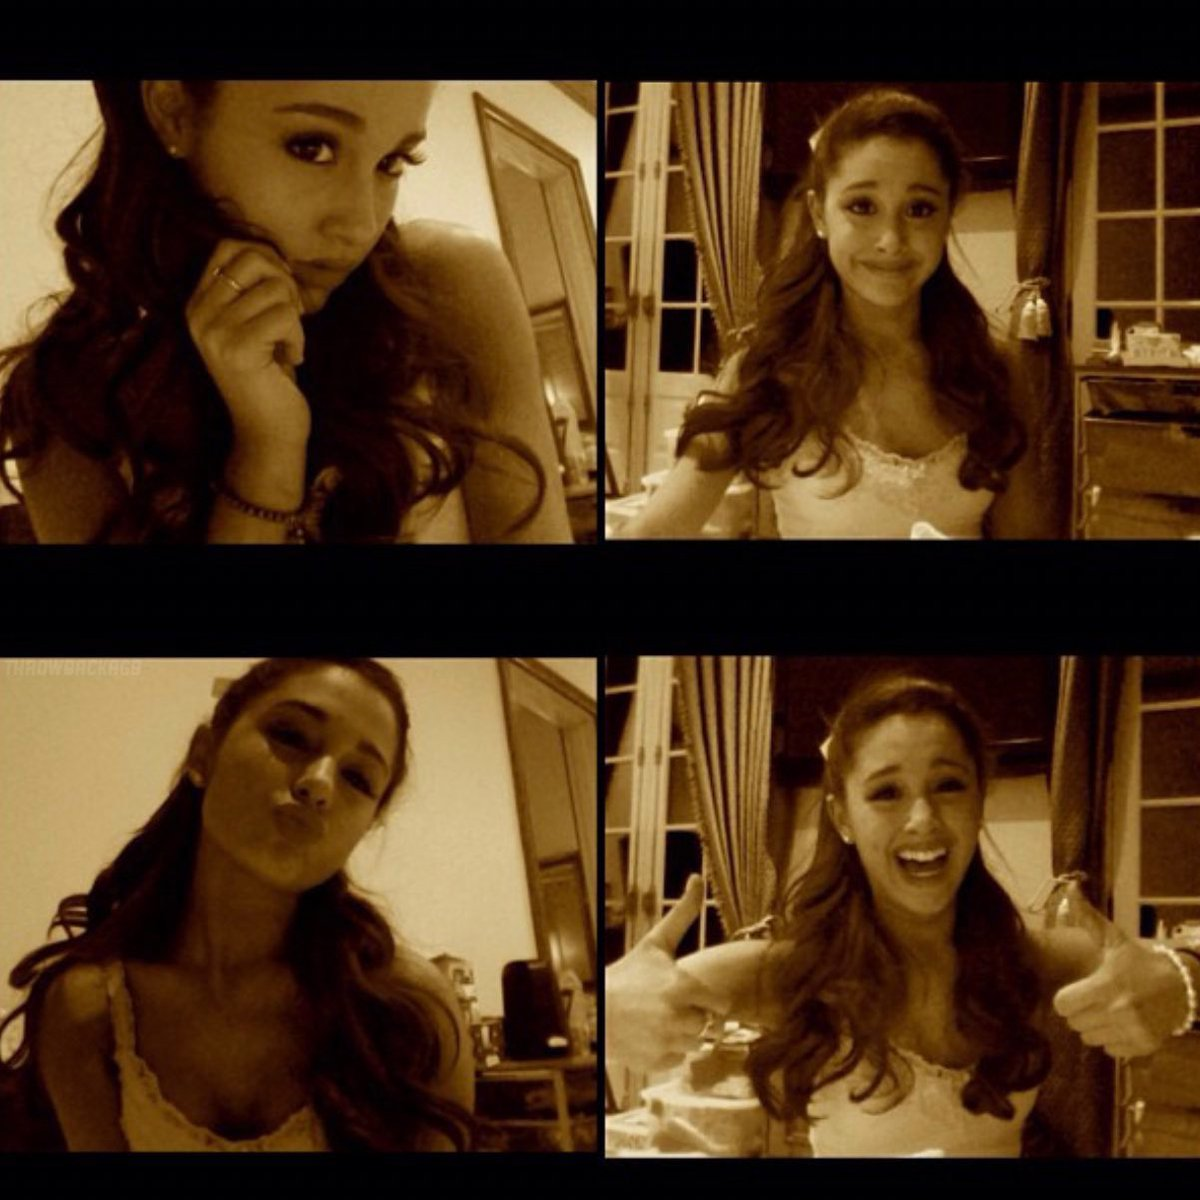 Ariana via Instagram 8 years ago today 'What people think i'm like / What i'm actually like' (26th January 2013)